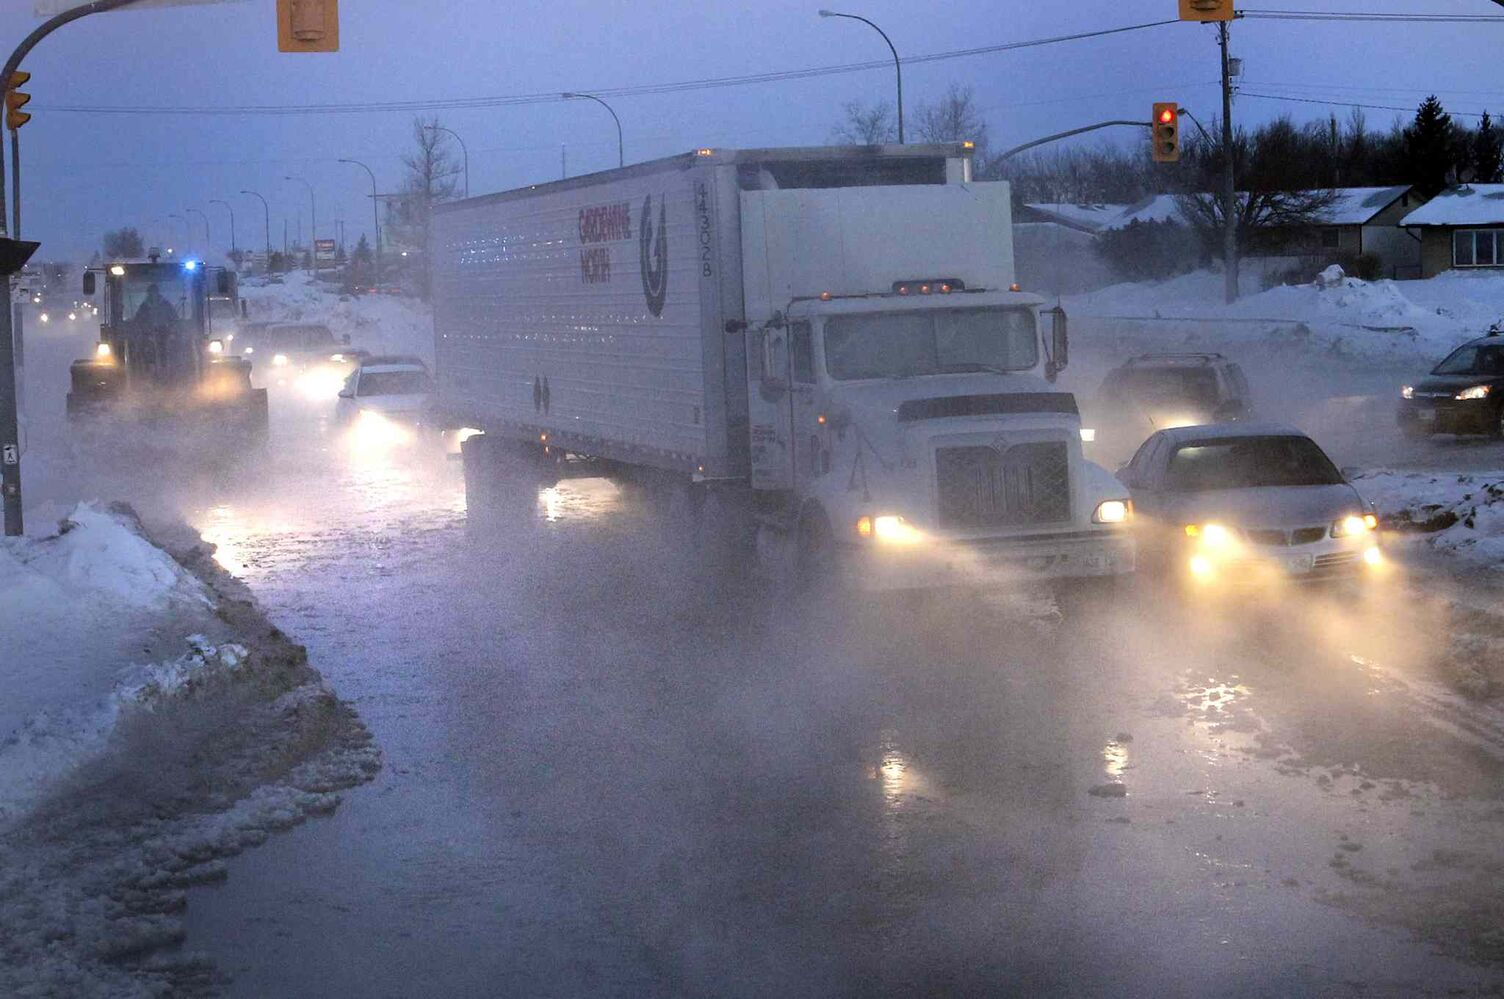 Traffic moves slowly through the water from a large water main break on southbound lanes of Route 90 at Selkirk Avenue on a -25C Tuesday morning. Water main breaks have consistently plagued city workers and commuters this winter. (Wayne Glowacki / Winnipeg Free Press)